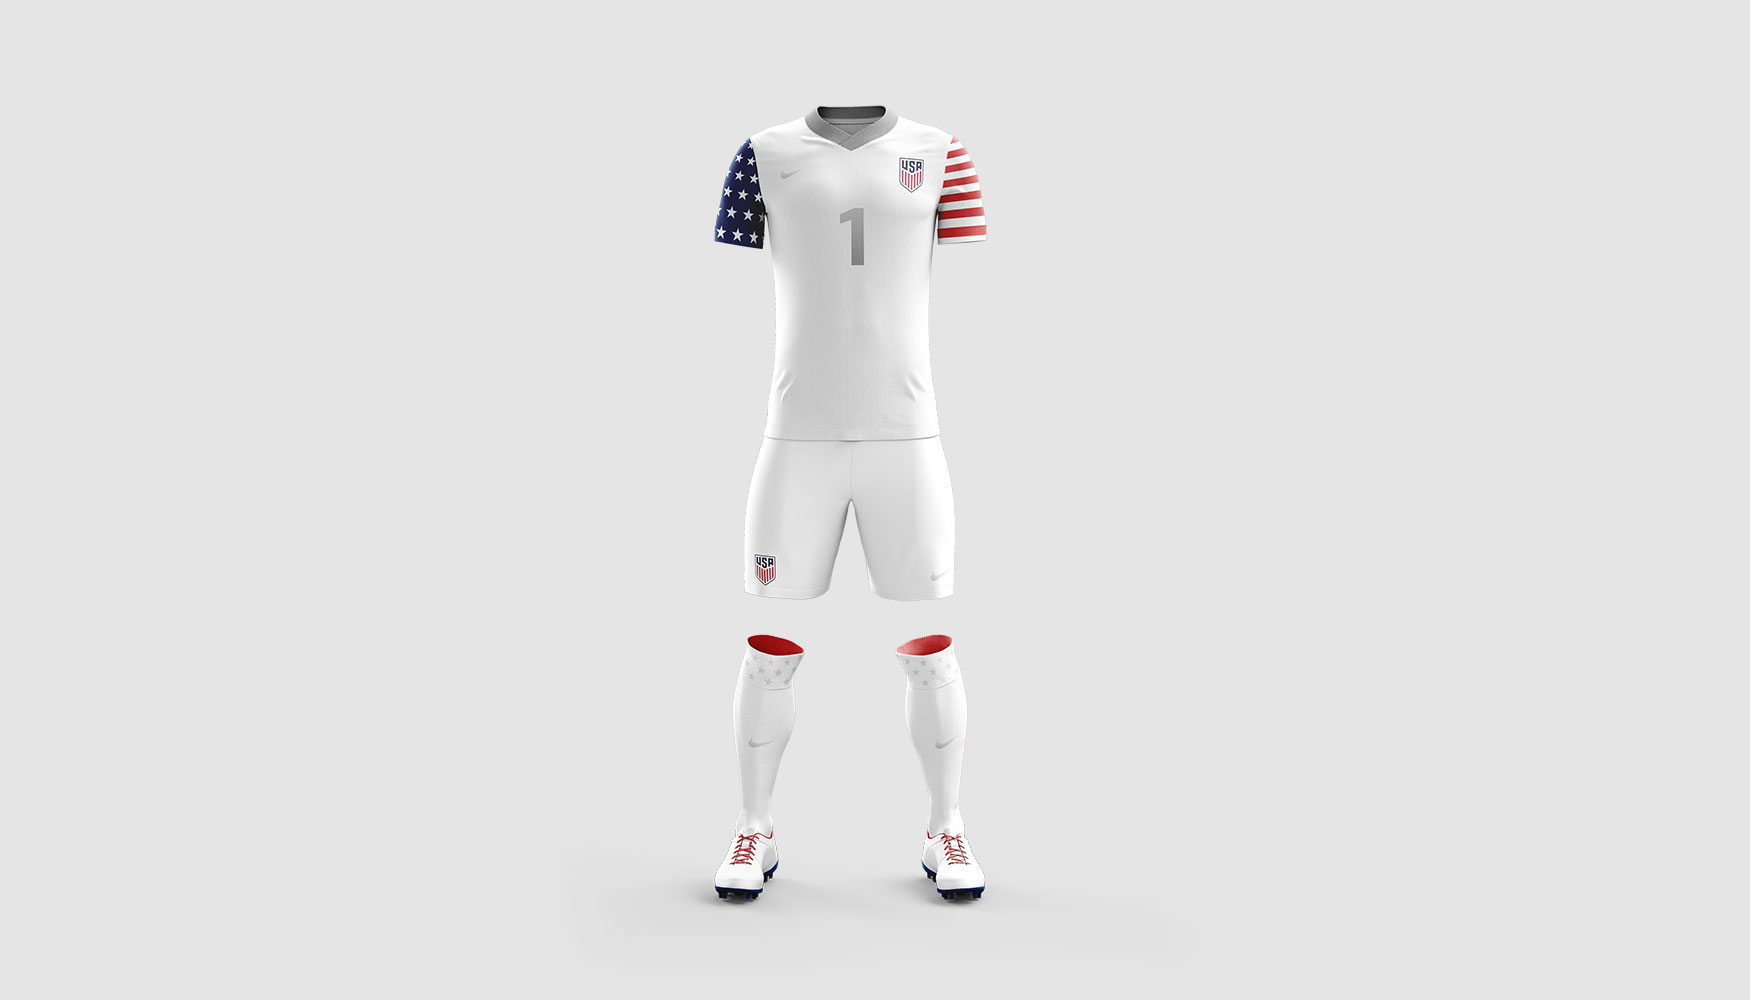 watch a1369 4a645 Concept Nike US Soccer Jersey Designs | USMNT Jersey Concepts